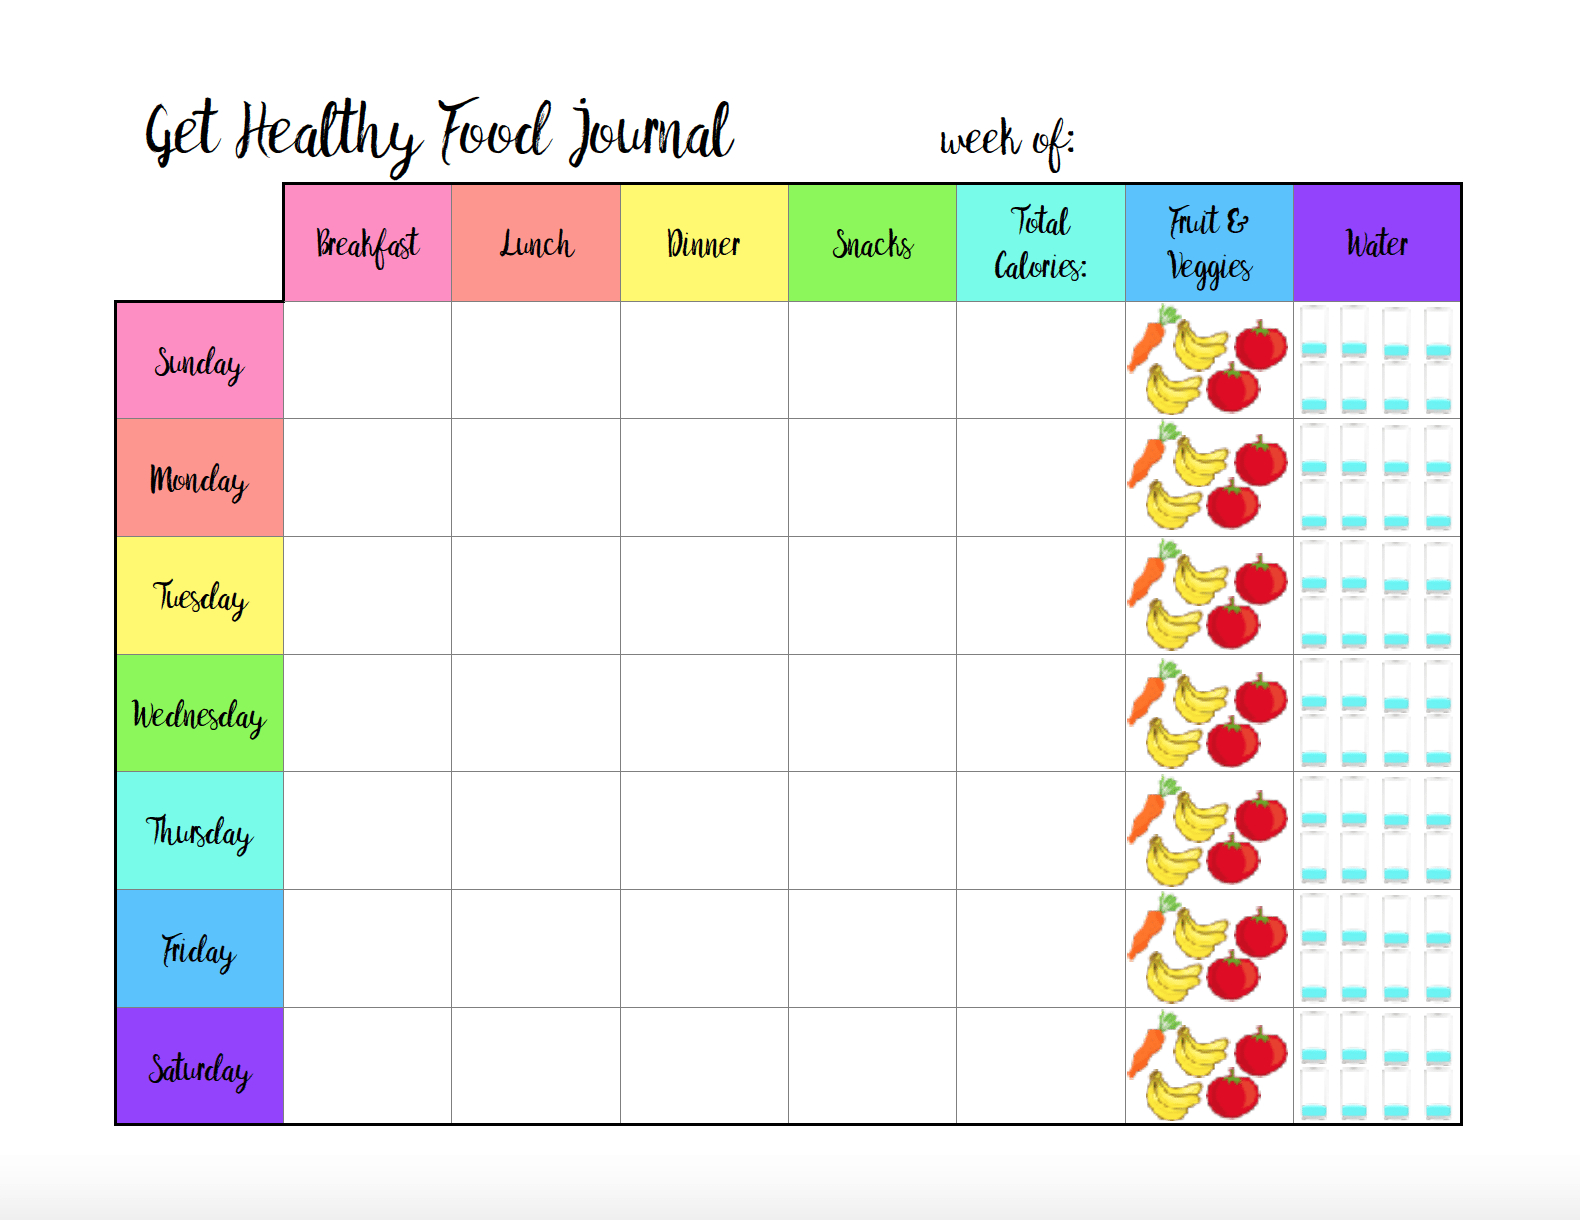 Food Diary Printable New Free Printable Food Journal 6 Different - Free Printable Calorie Counter Journal